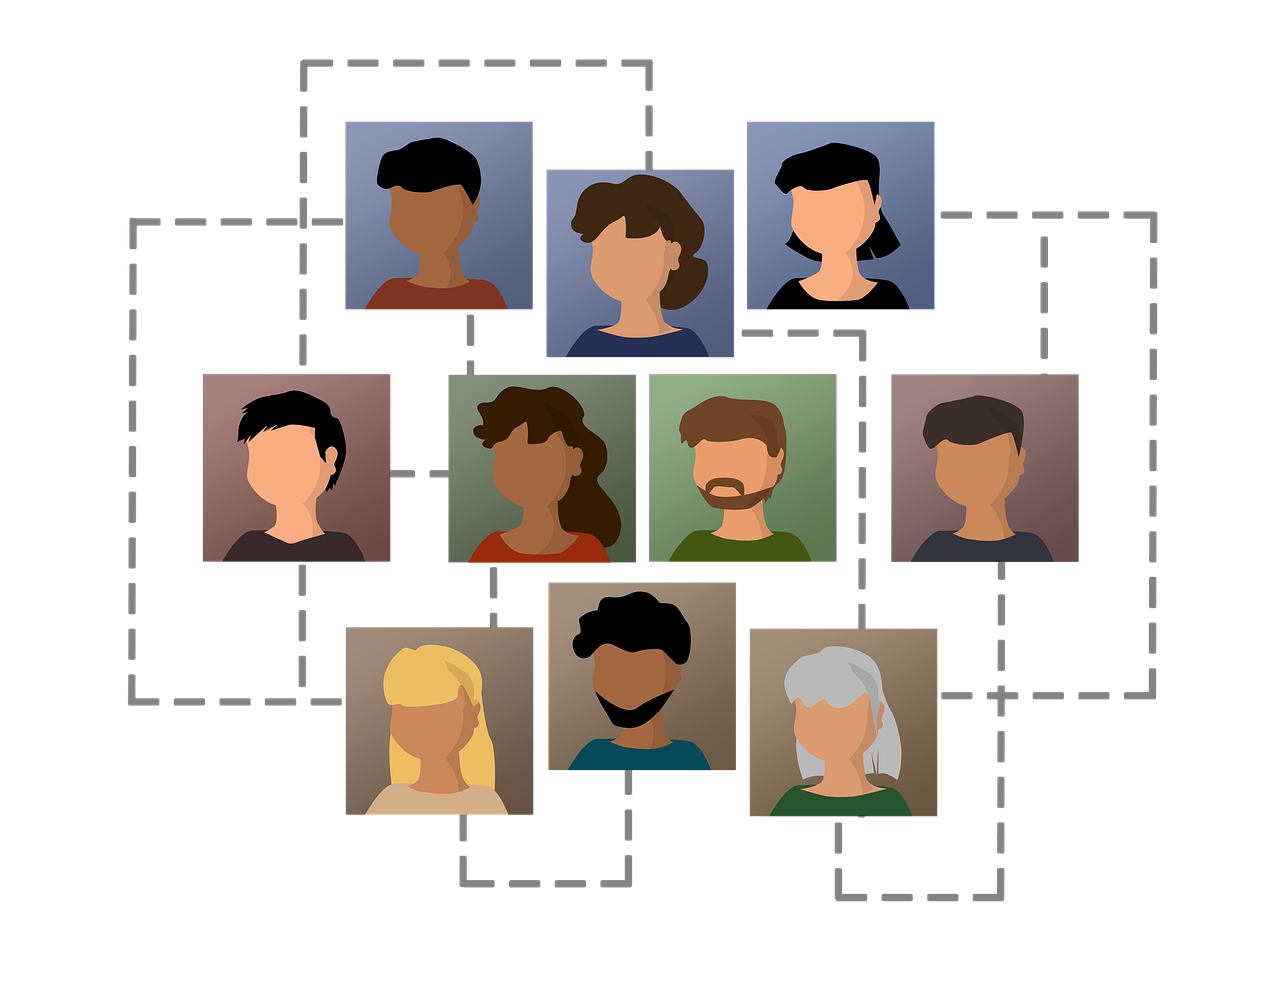 human resources, icons, network-5033959.jpg